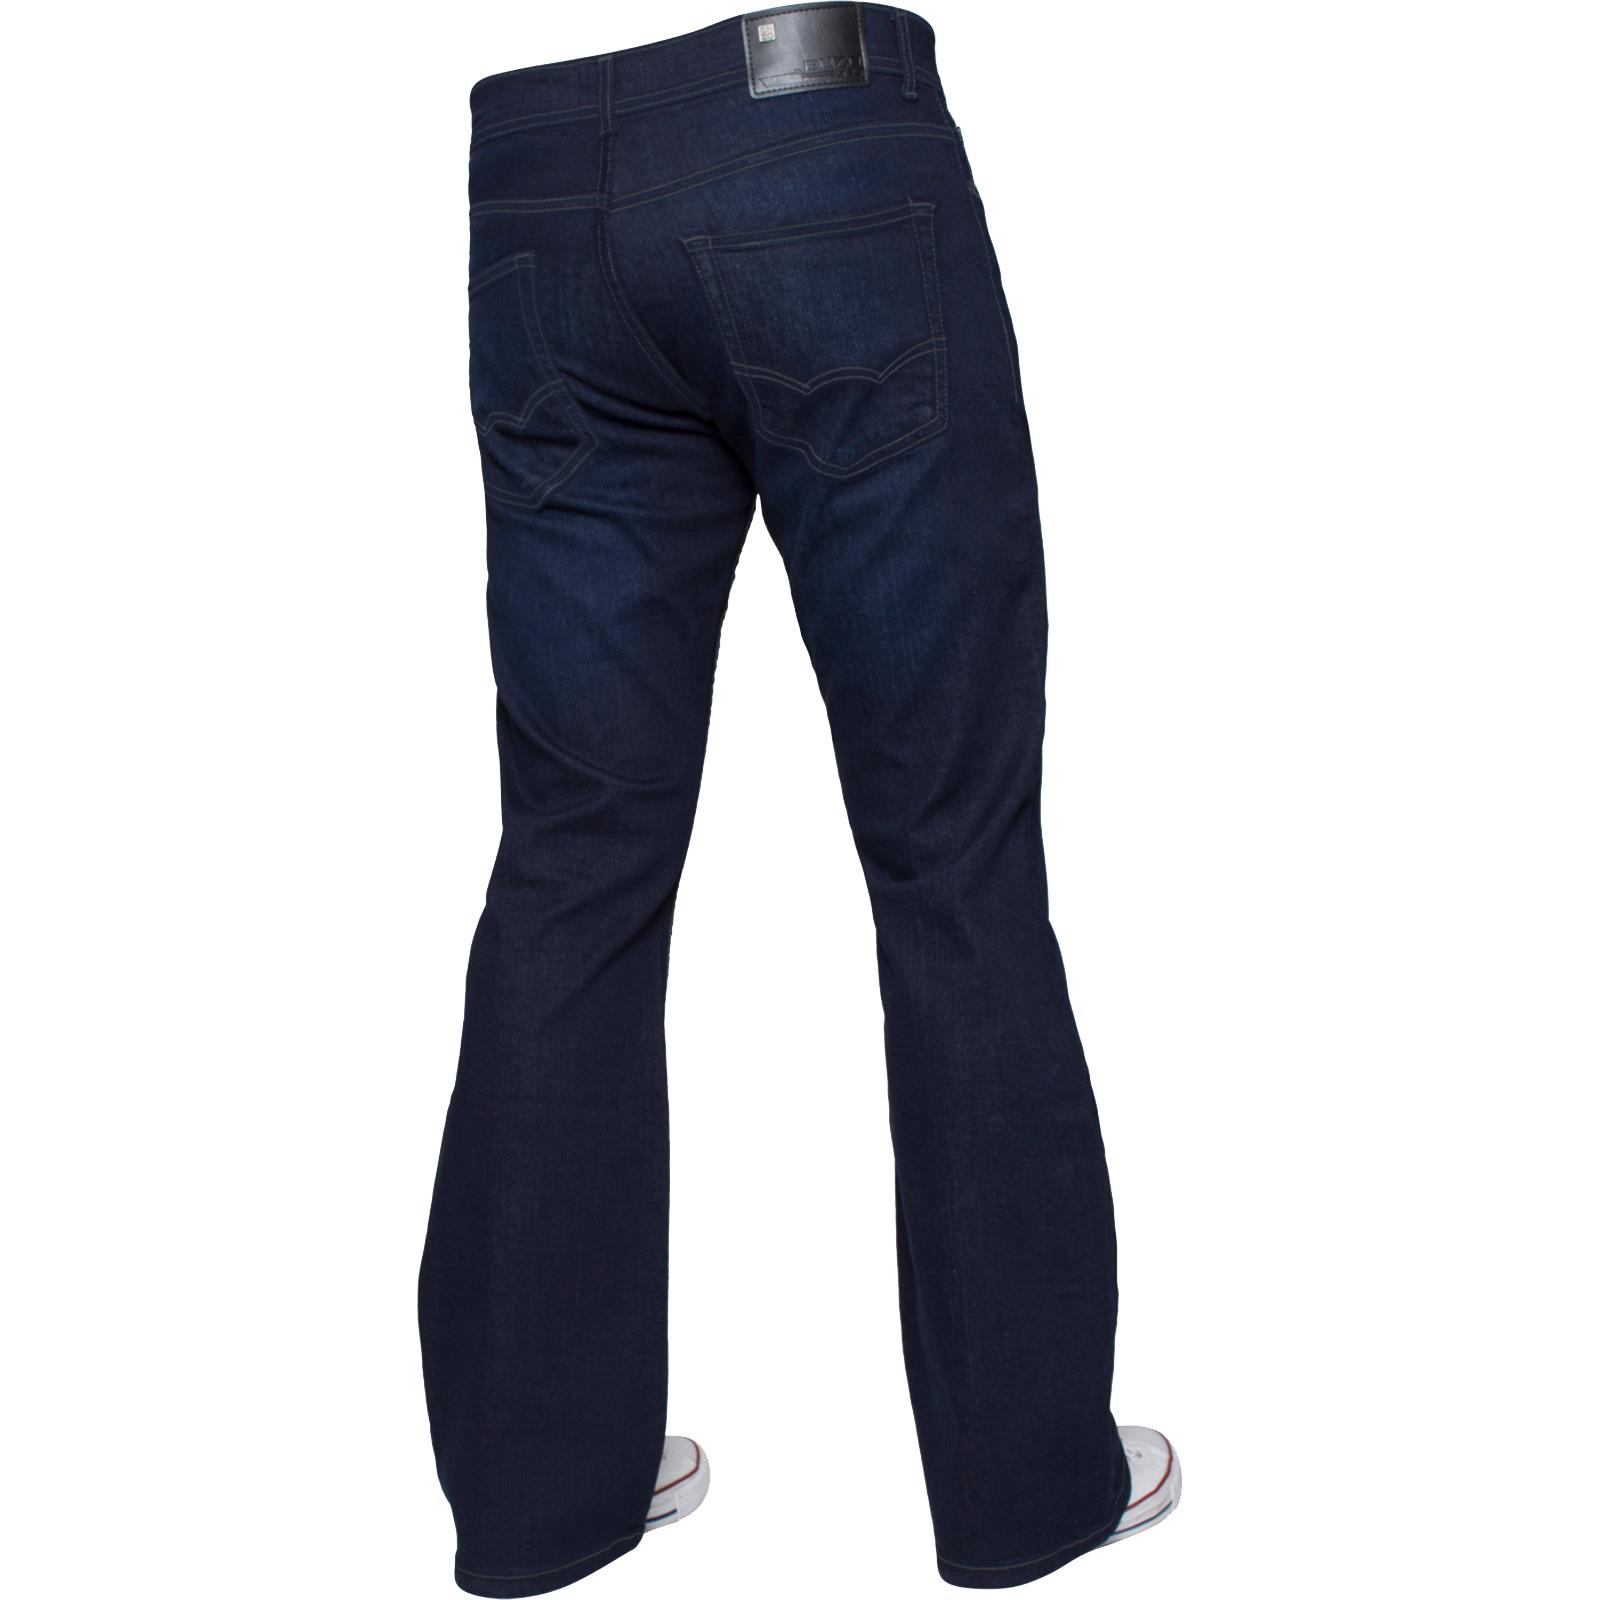 New-Enzo-Mens-Designer-Bootcut-Wide-Leg-Jeans-Flared-Stretch-Denim-All-Waists thumbnail 19